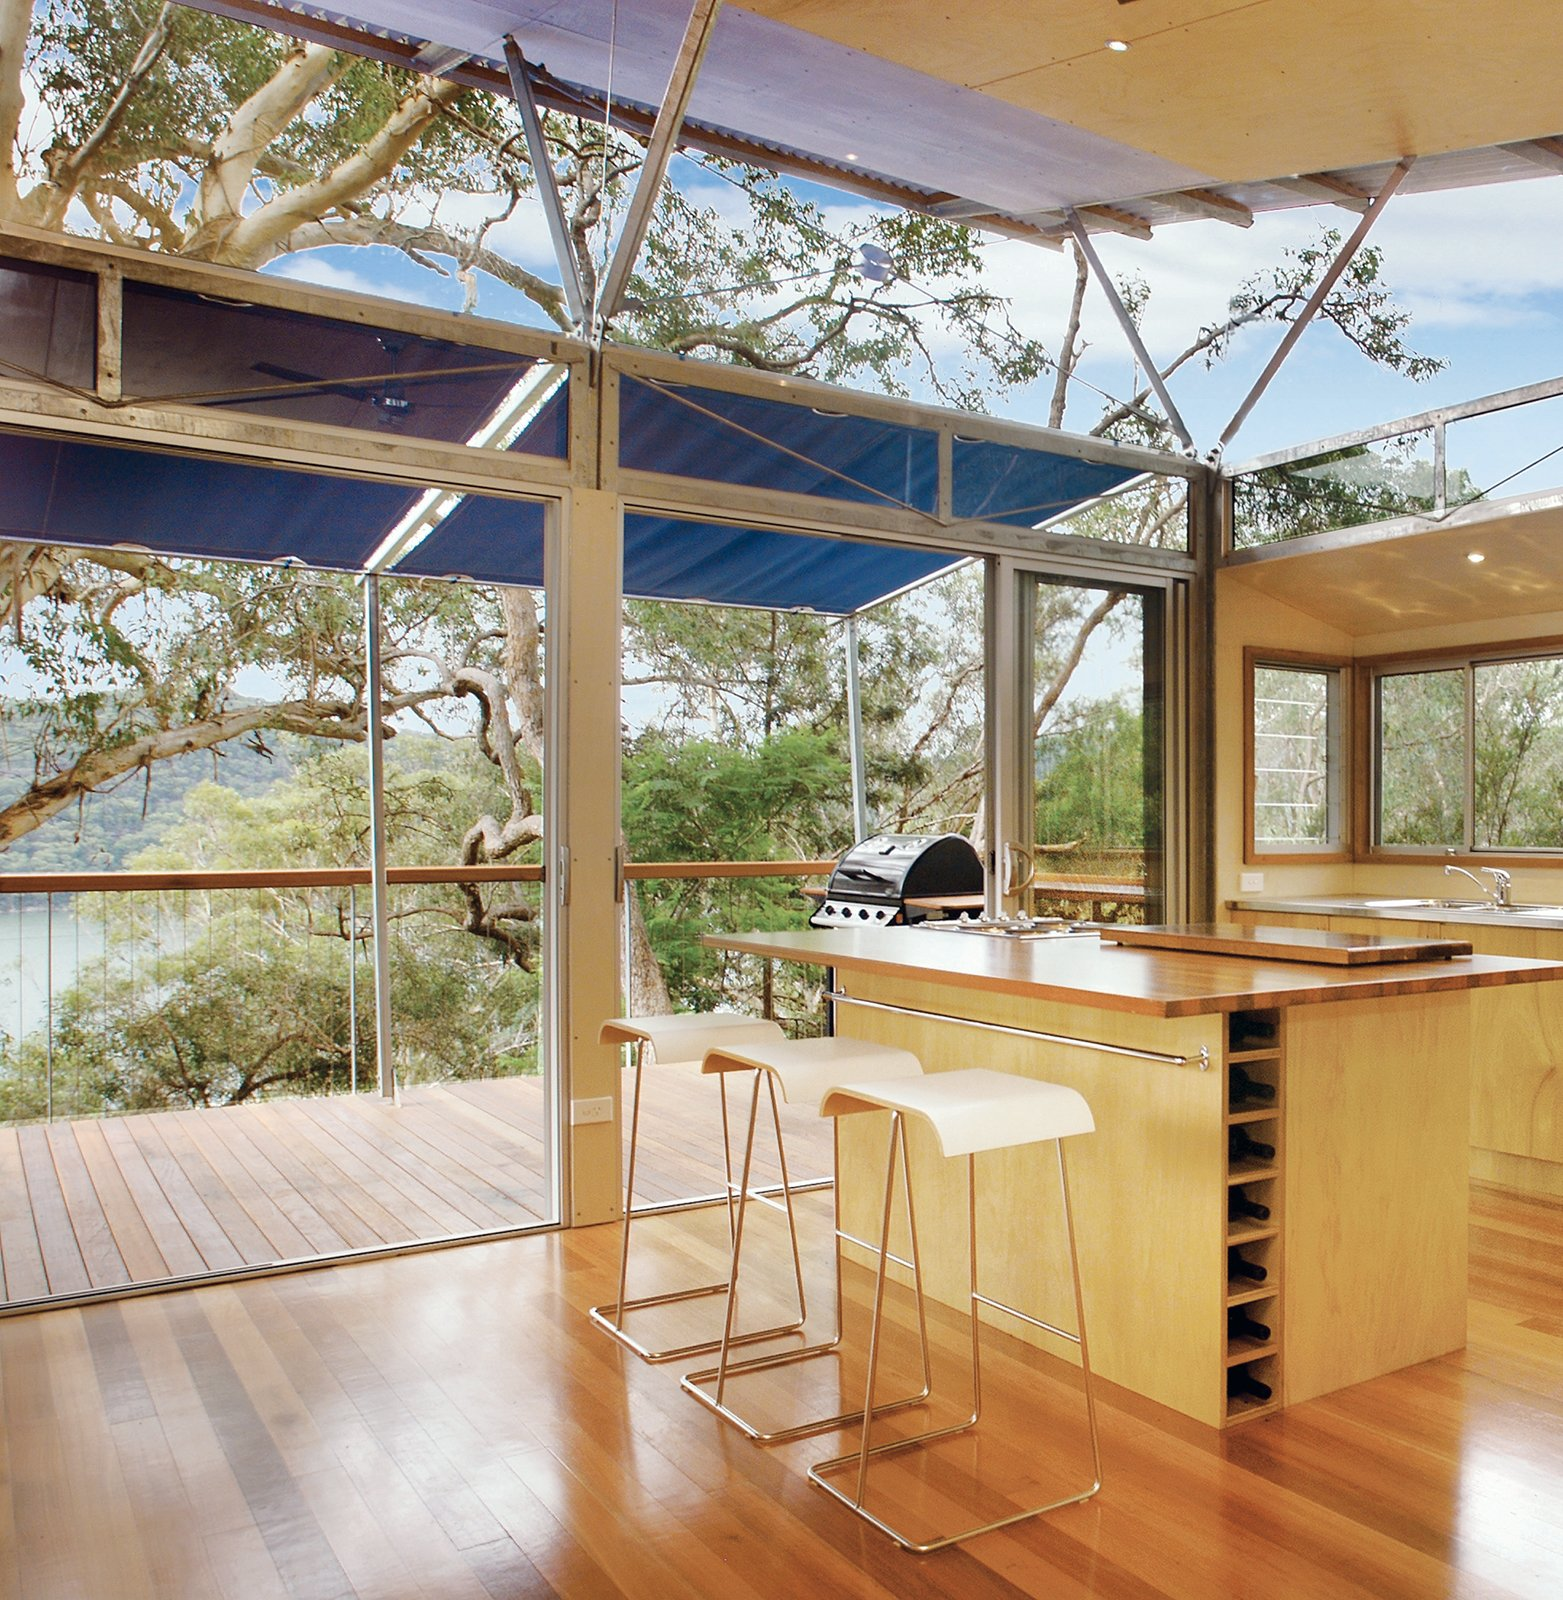 The kitchen has a view to the Hawkesbury River.